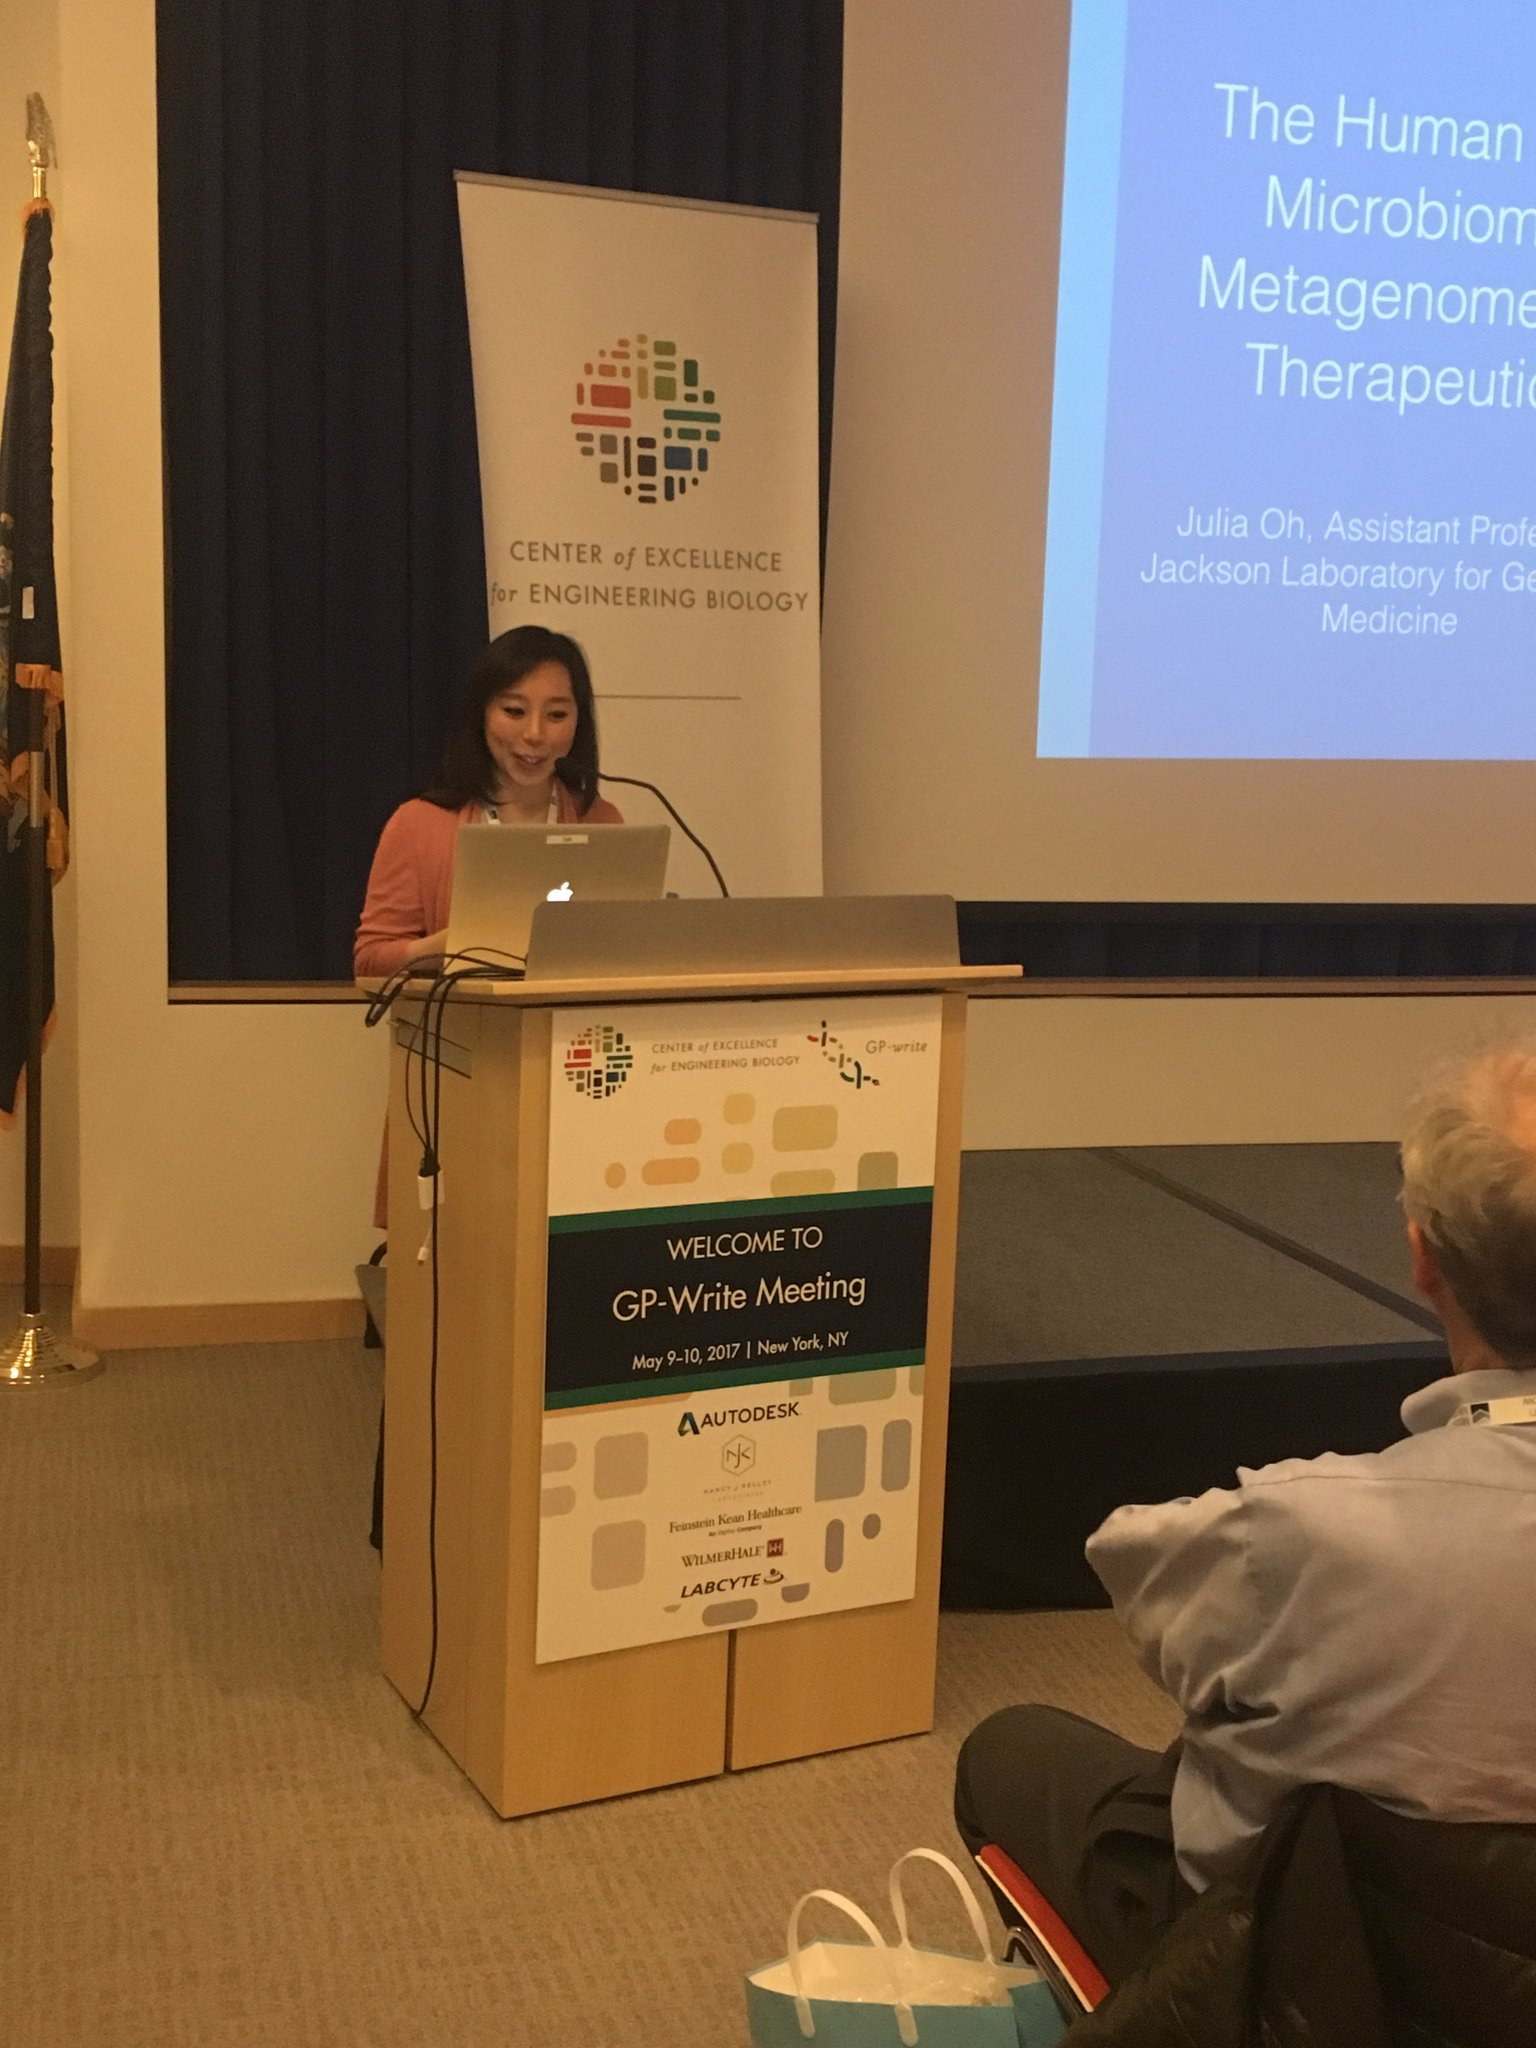 The Jackson Laboratory's @jjss0 discusses the human skin microbiome, from metagenomes to therapeutics. #GPwrite https://t.co/qAKO84q8Vm